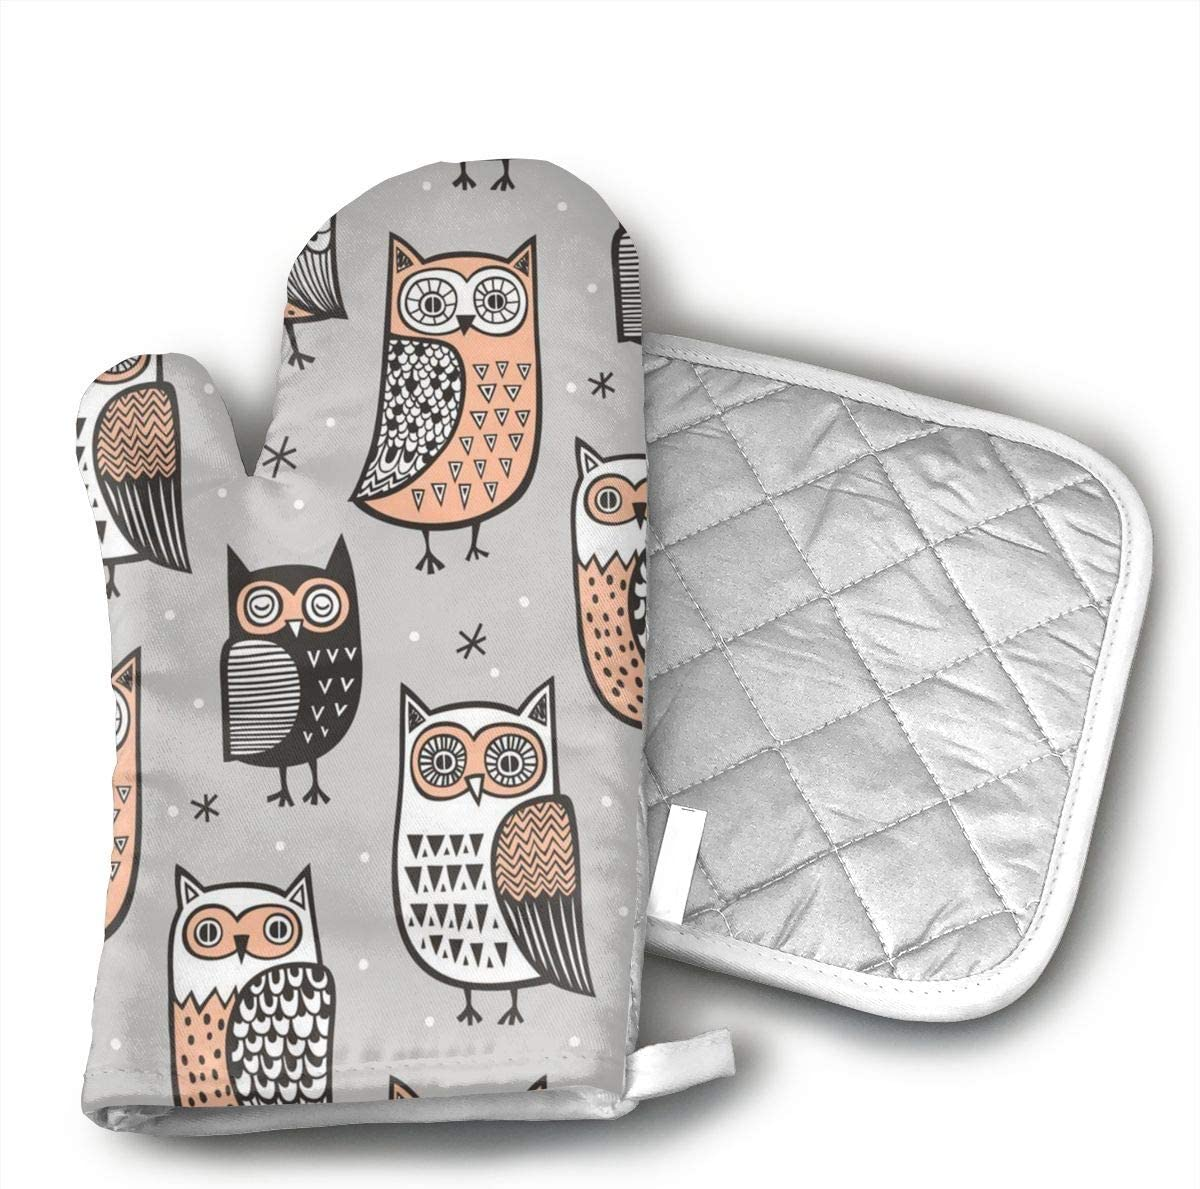 FSDGHVFIJTT ujd Owls Neoprene Oven Mitts and Potholder Set-Heat Resistant Oven Gloves to Protect Hands and Surfaces with Non-Slip Grip, Hanging Loop-Ideal for Handling Hot Cookware Items